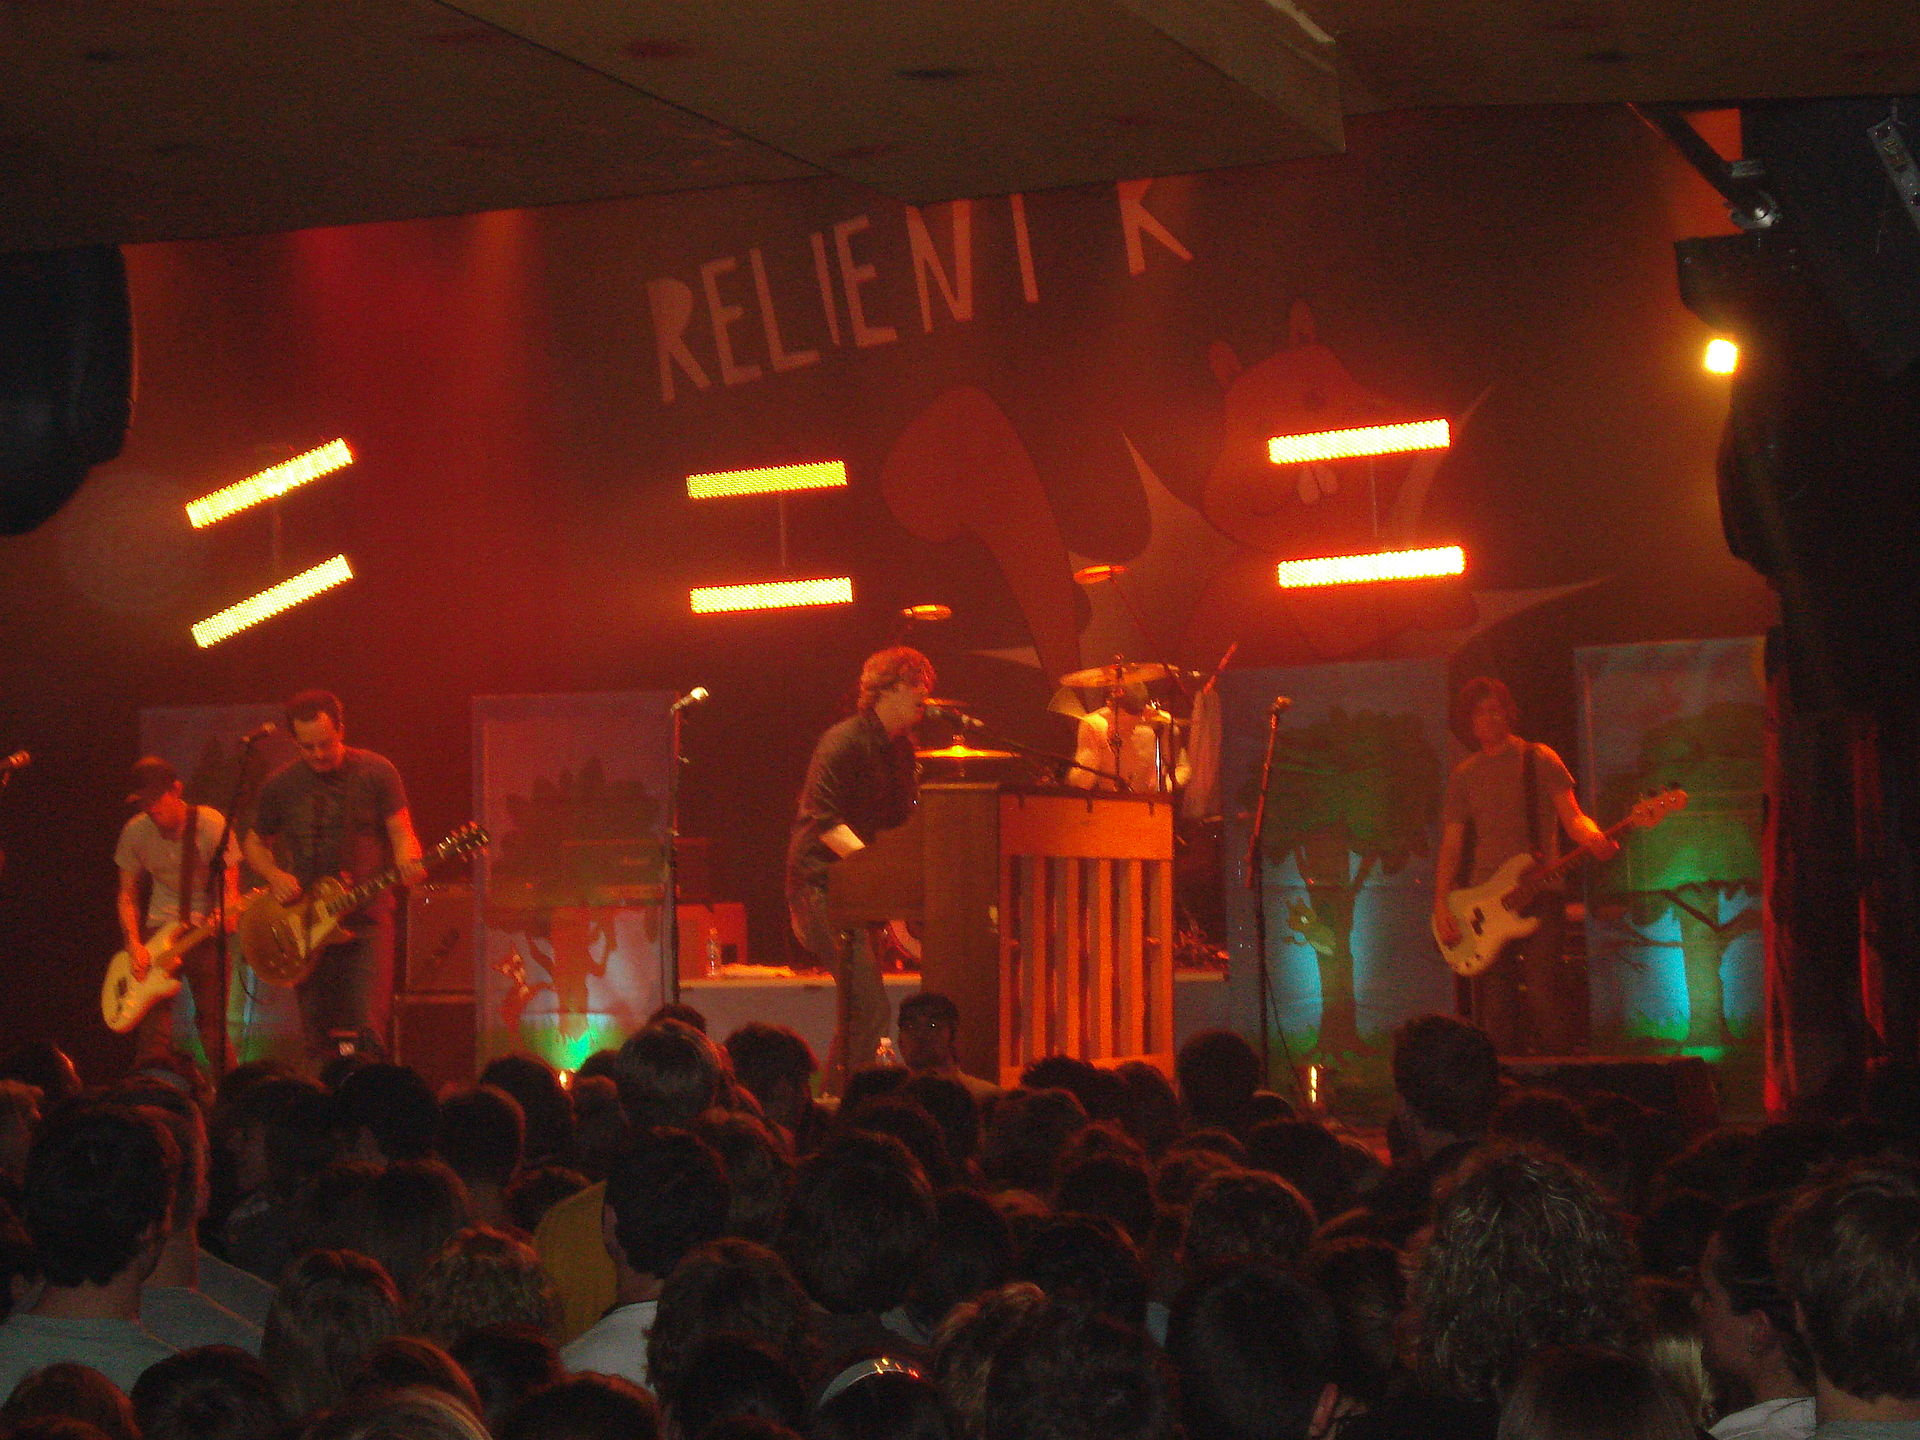 Relient K Wikipedia